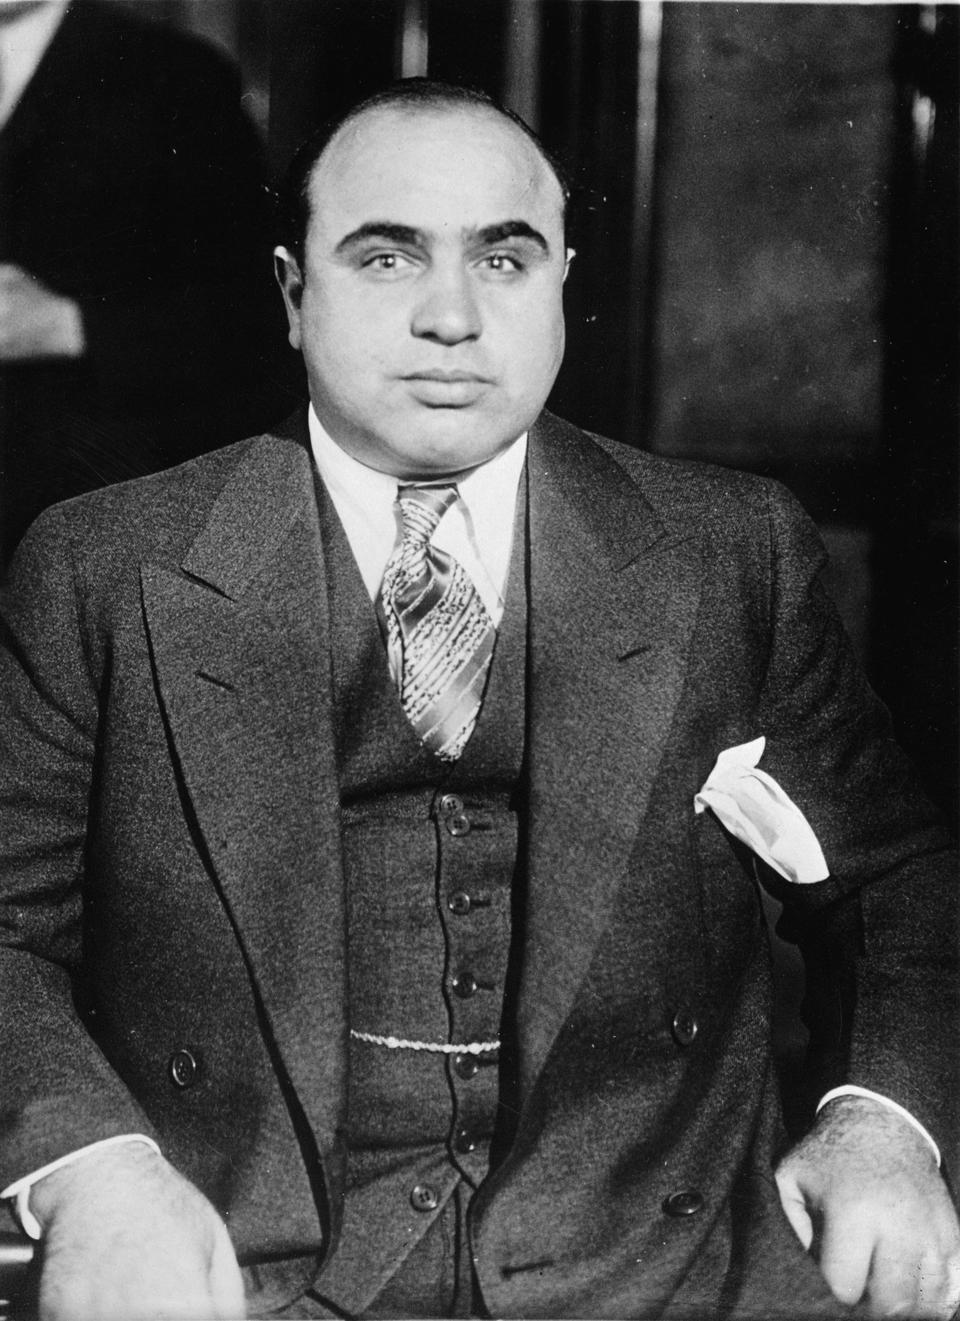 The king of gangsters Al Capone, March 5th 1932